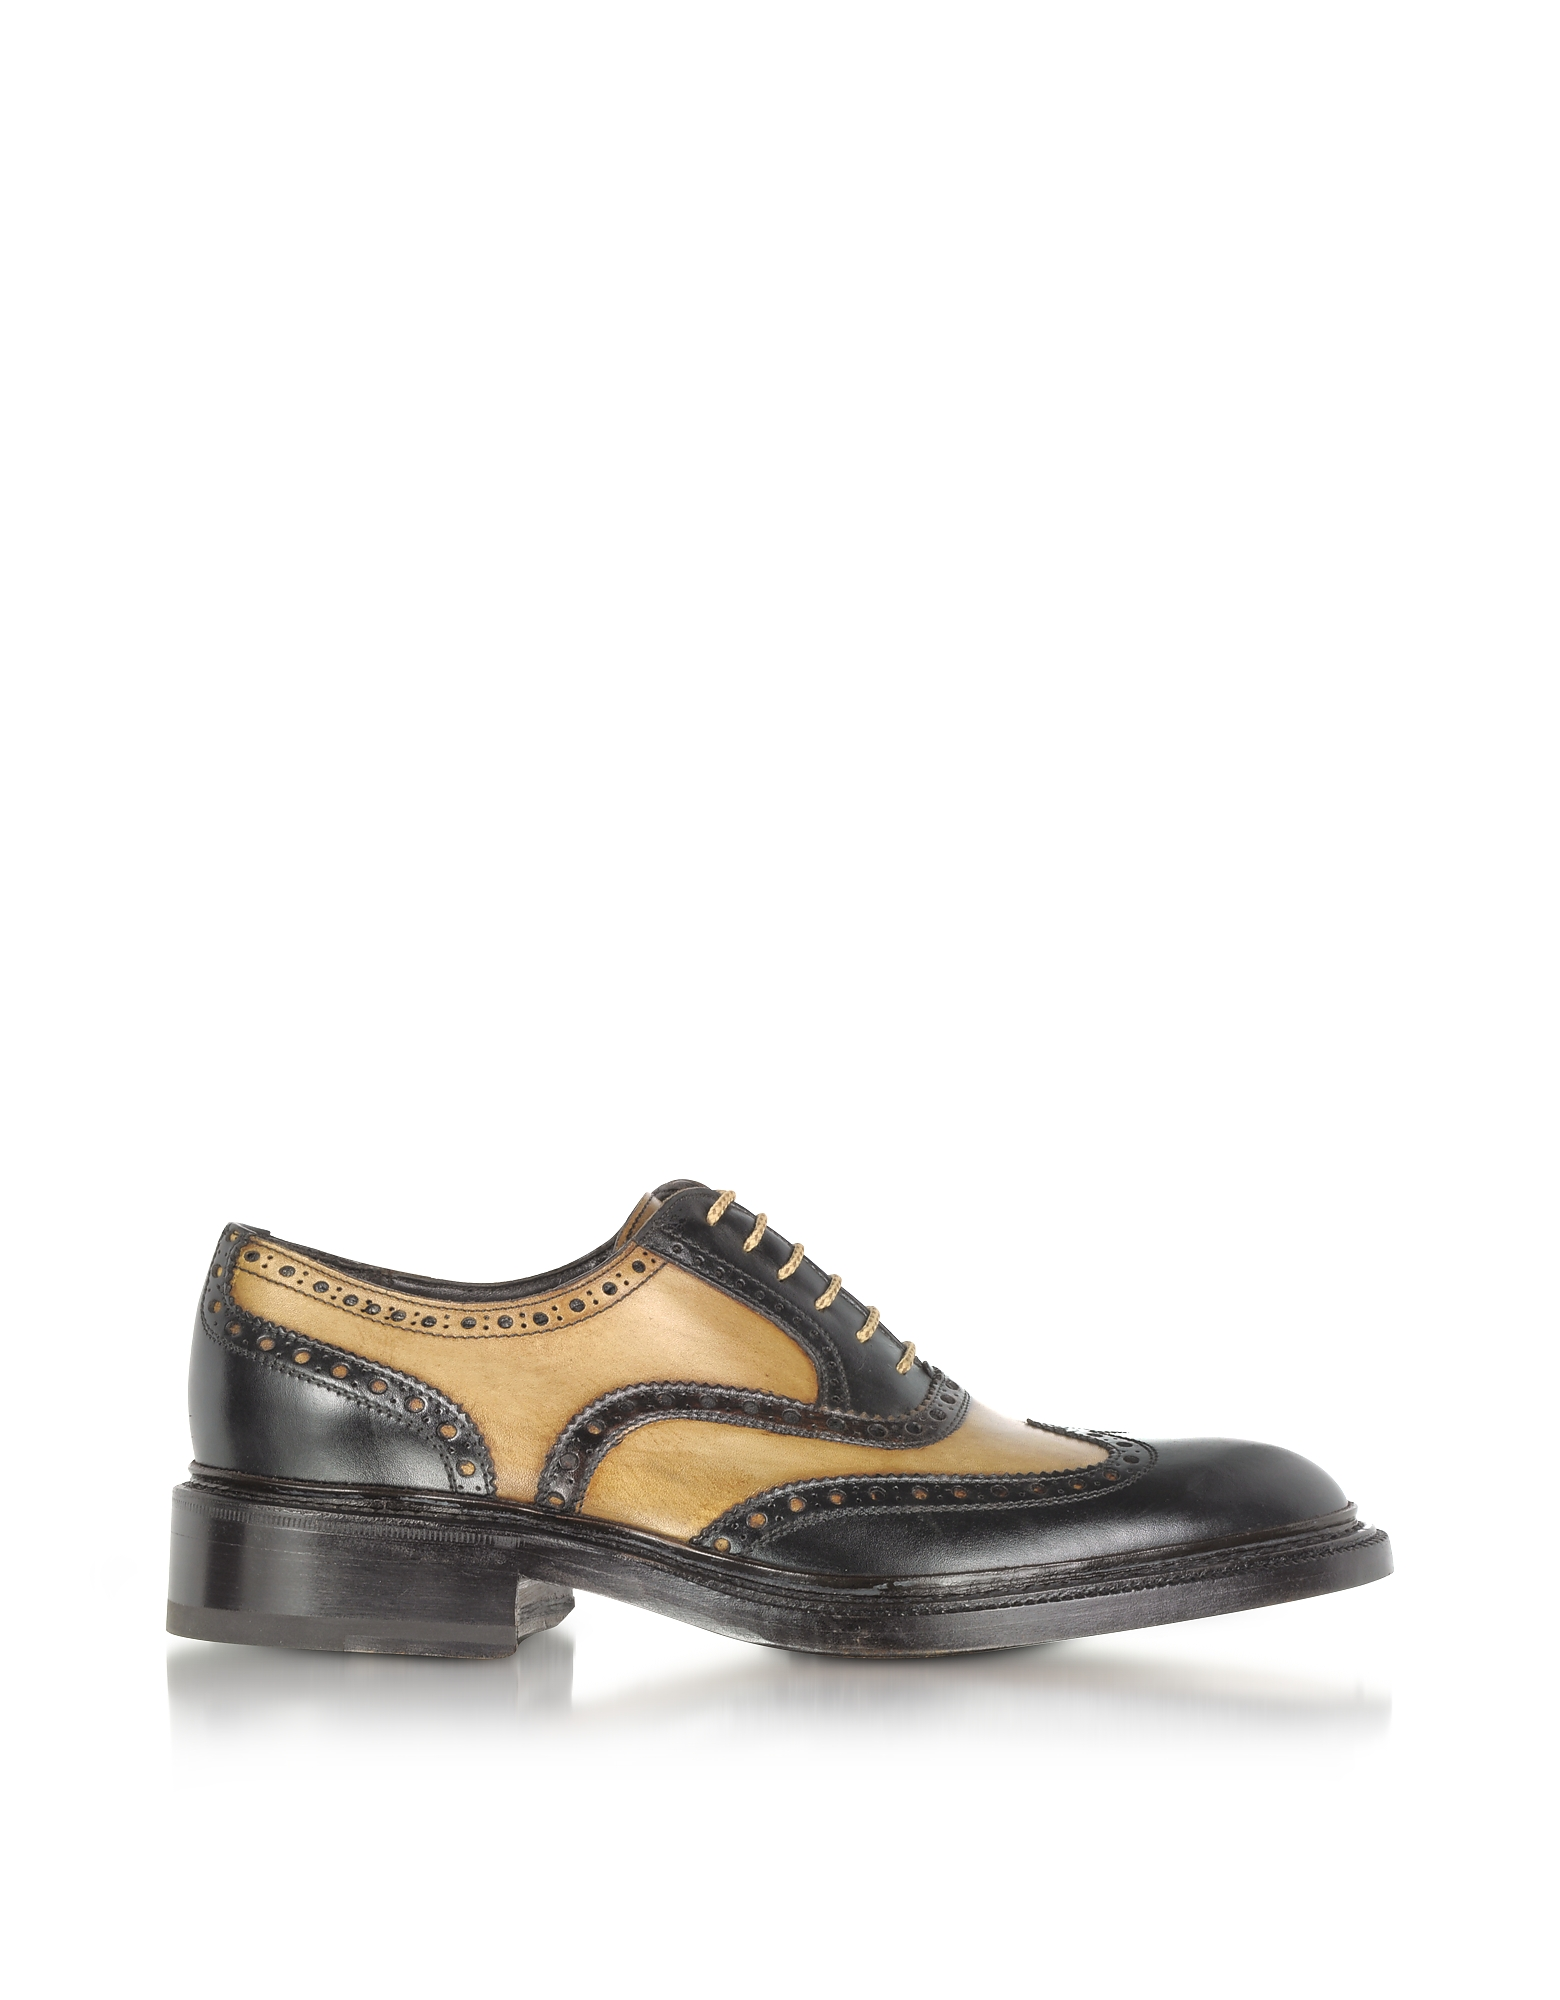 1950s Mens Shoes: Saddle Shoes, Boots, Greaser, Rockabilly Boardwalk Empire Forzieri  Shoes Italian Handcrafted Two-tone Wingtip Oxford Shoes $924.00 AT vintagedancer.com